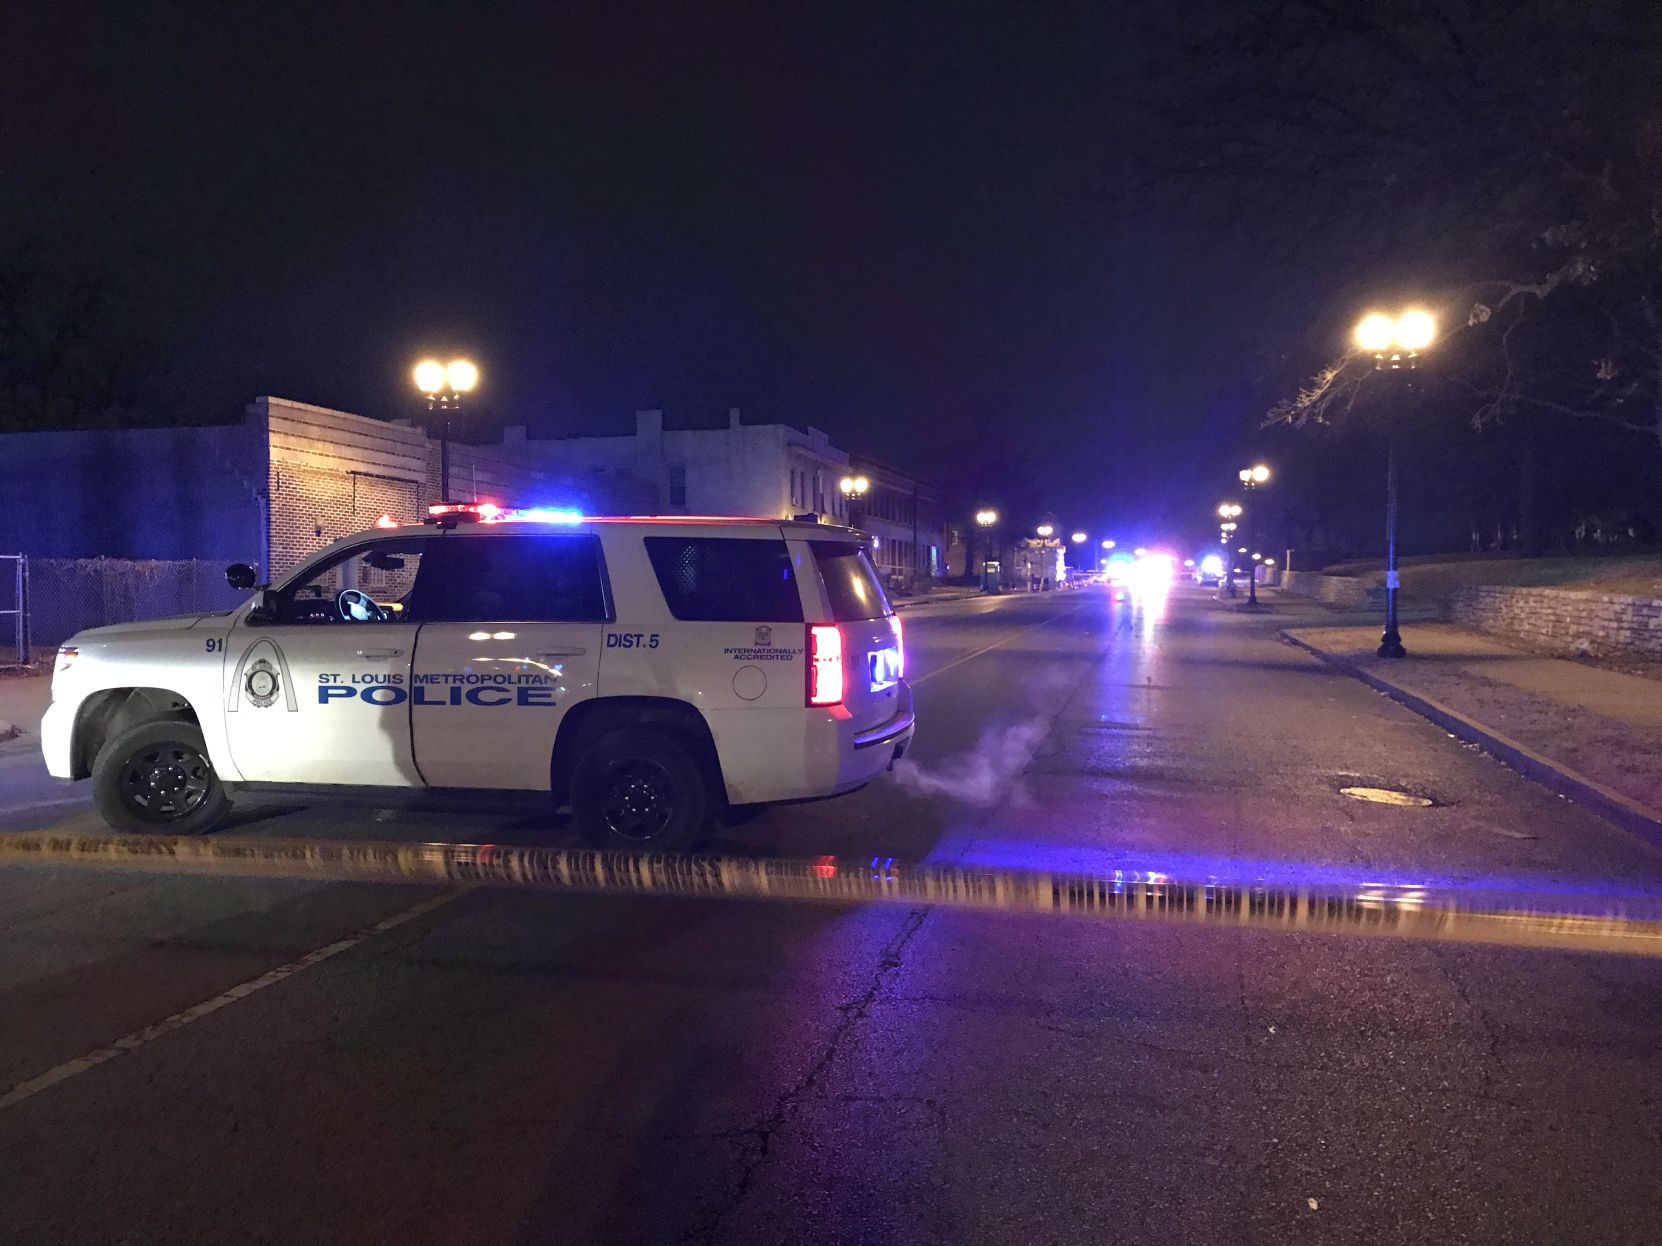 1 killed 1 wounded in shooting near